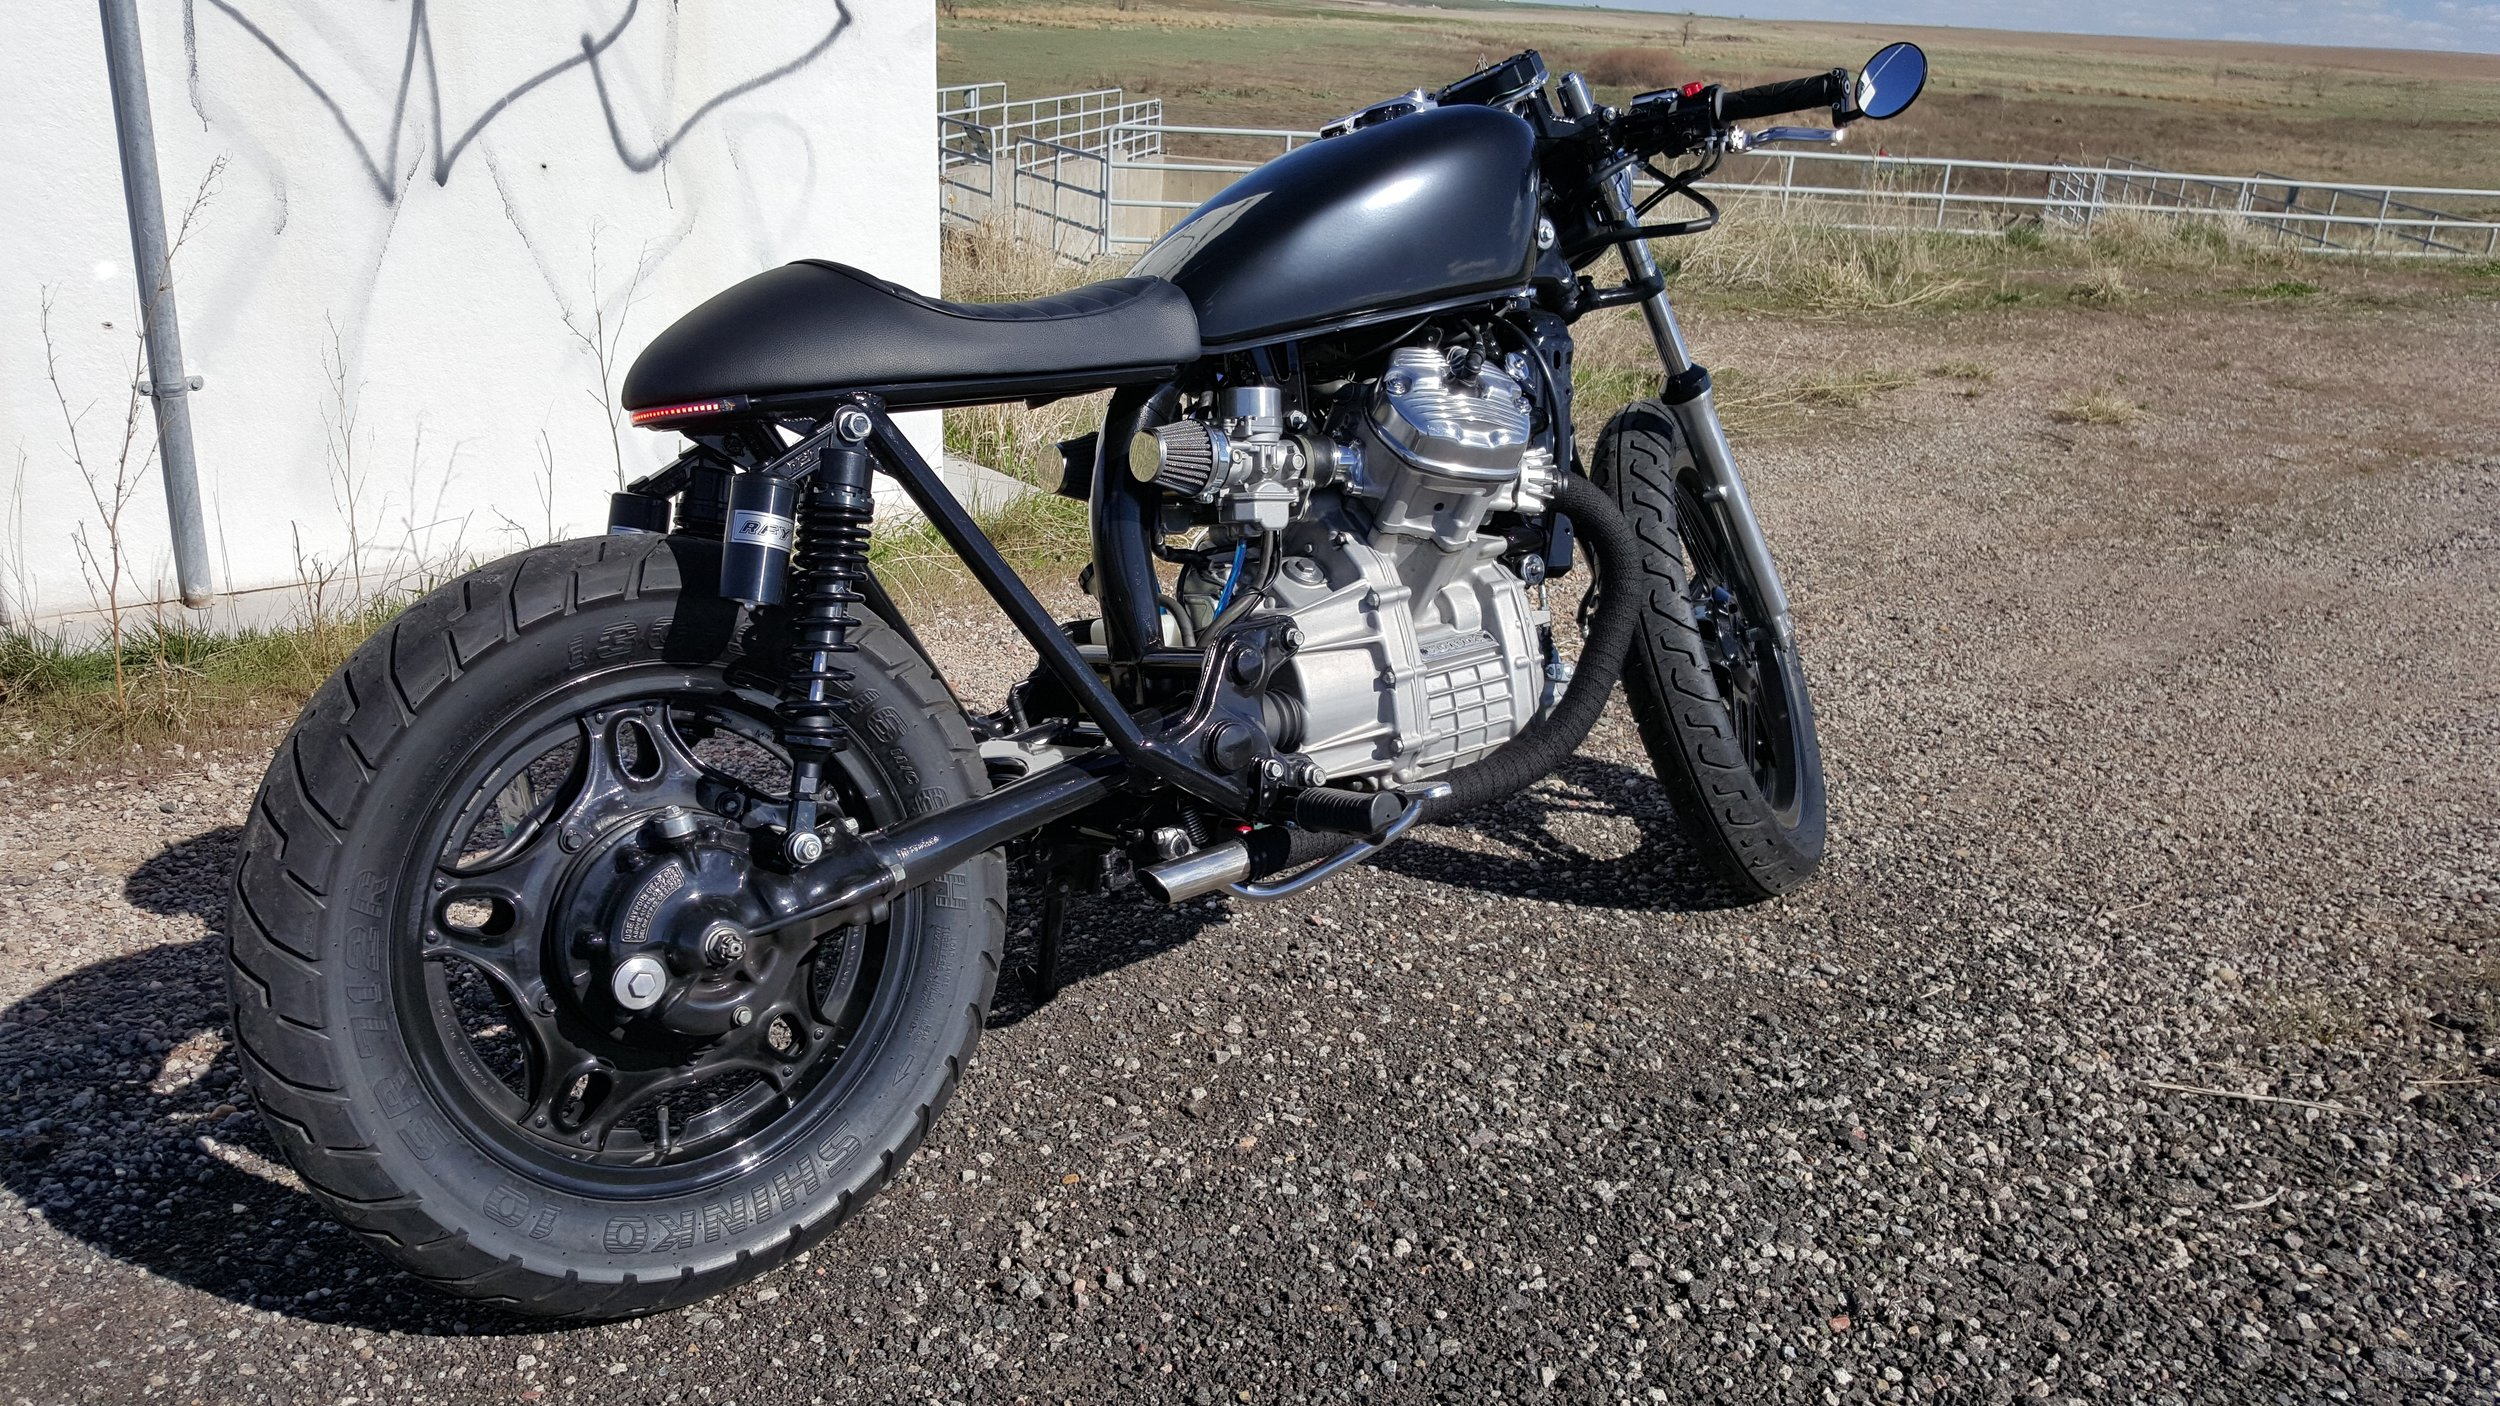 cx500 cafe racer lake motorcycle